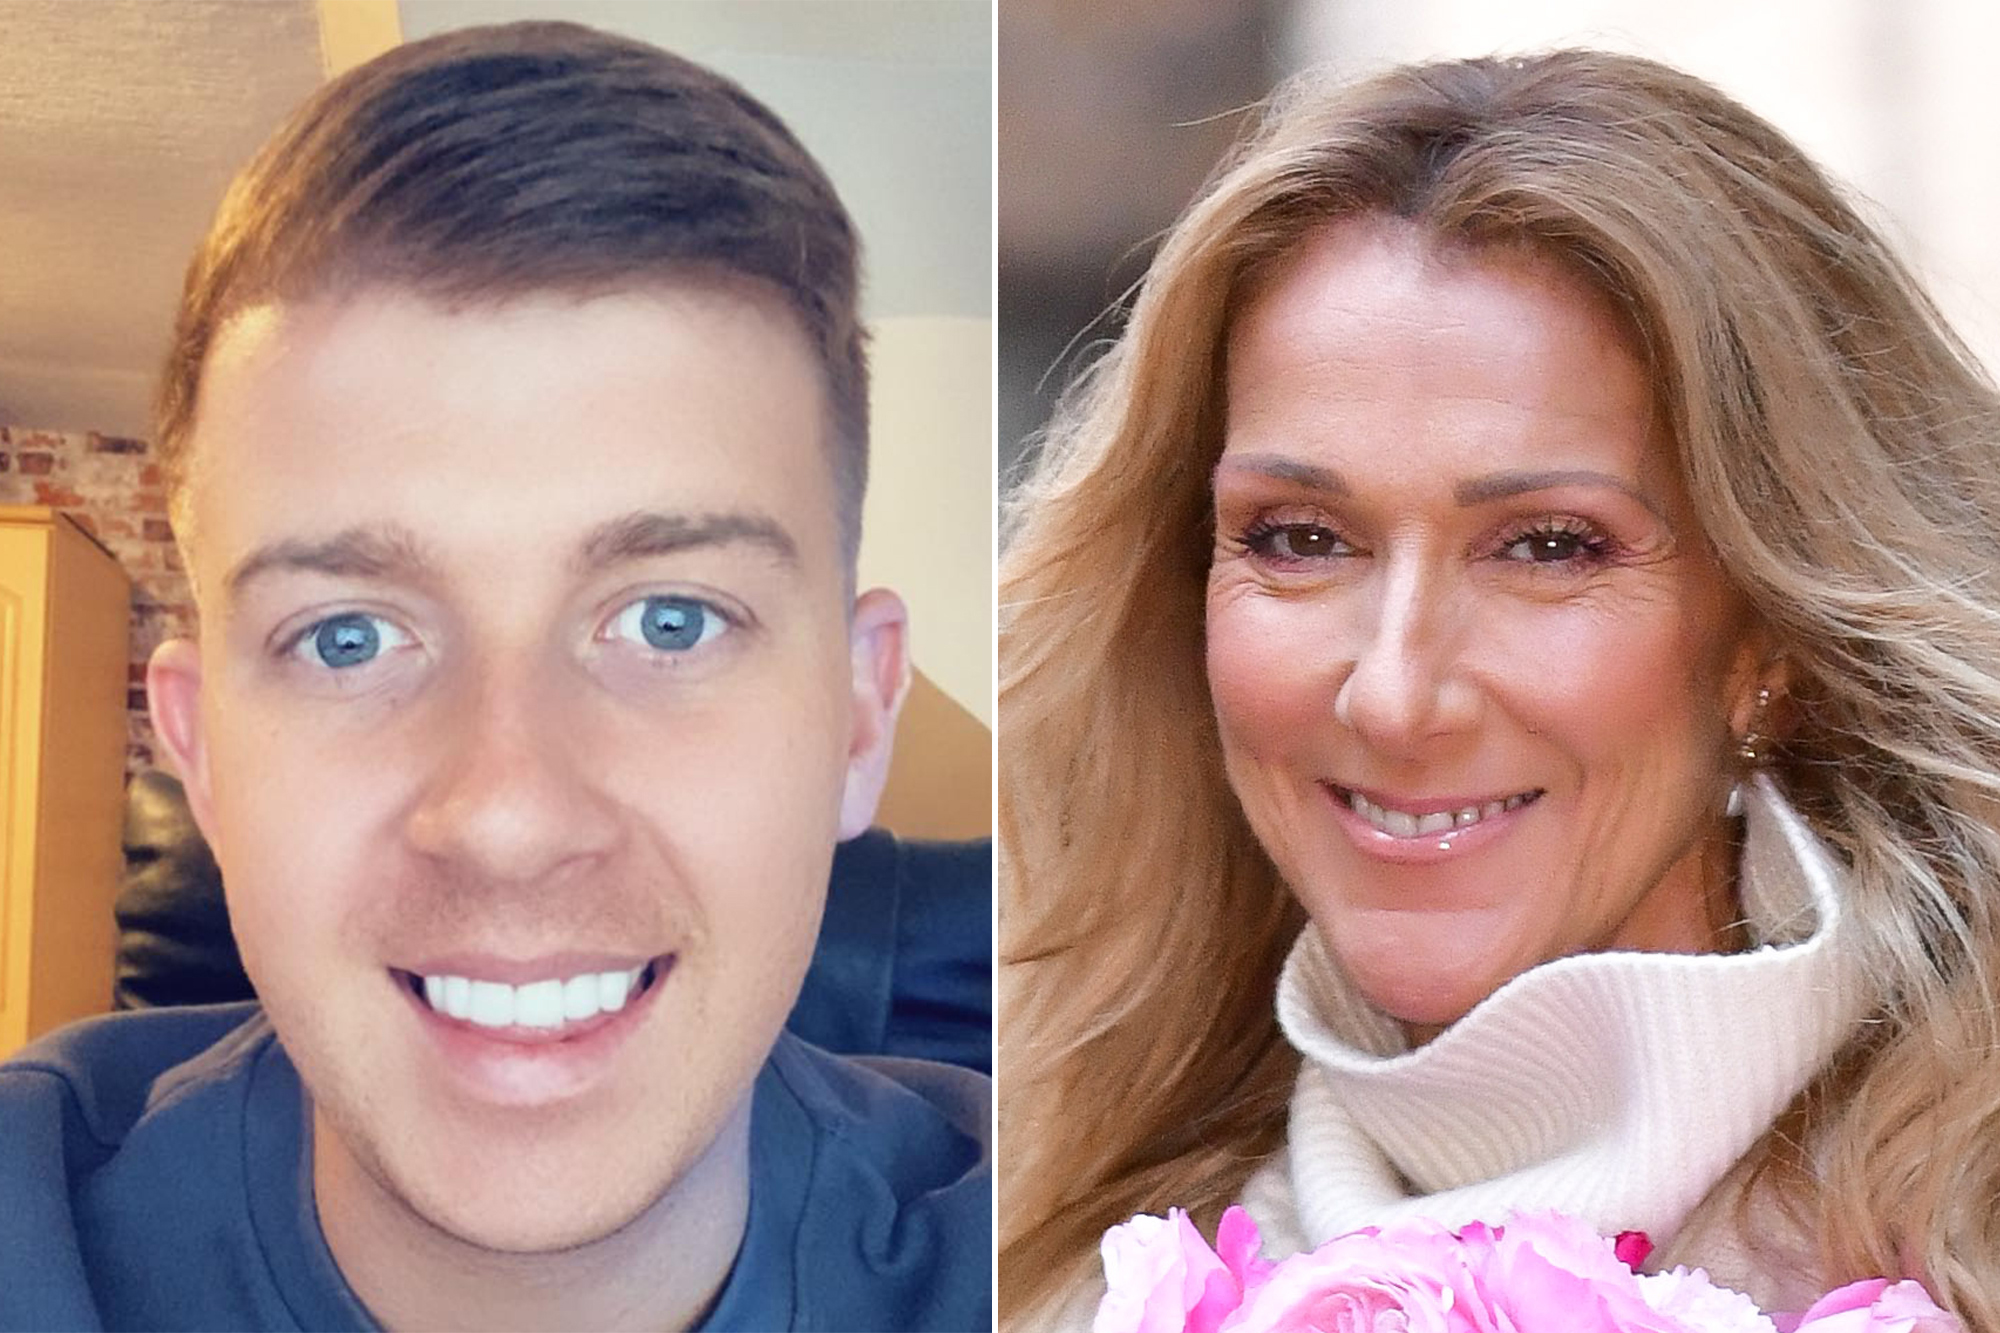 UK man gets drunk and legally changes name to Celine Dion